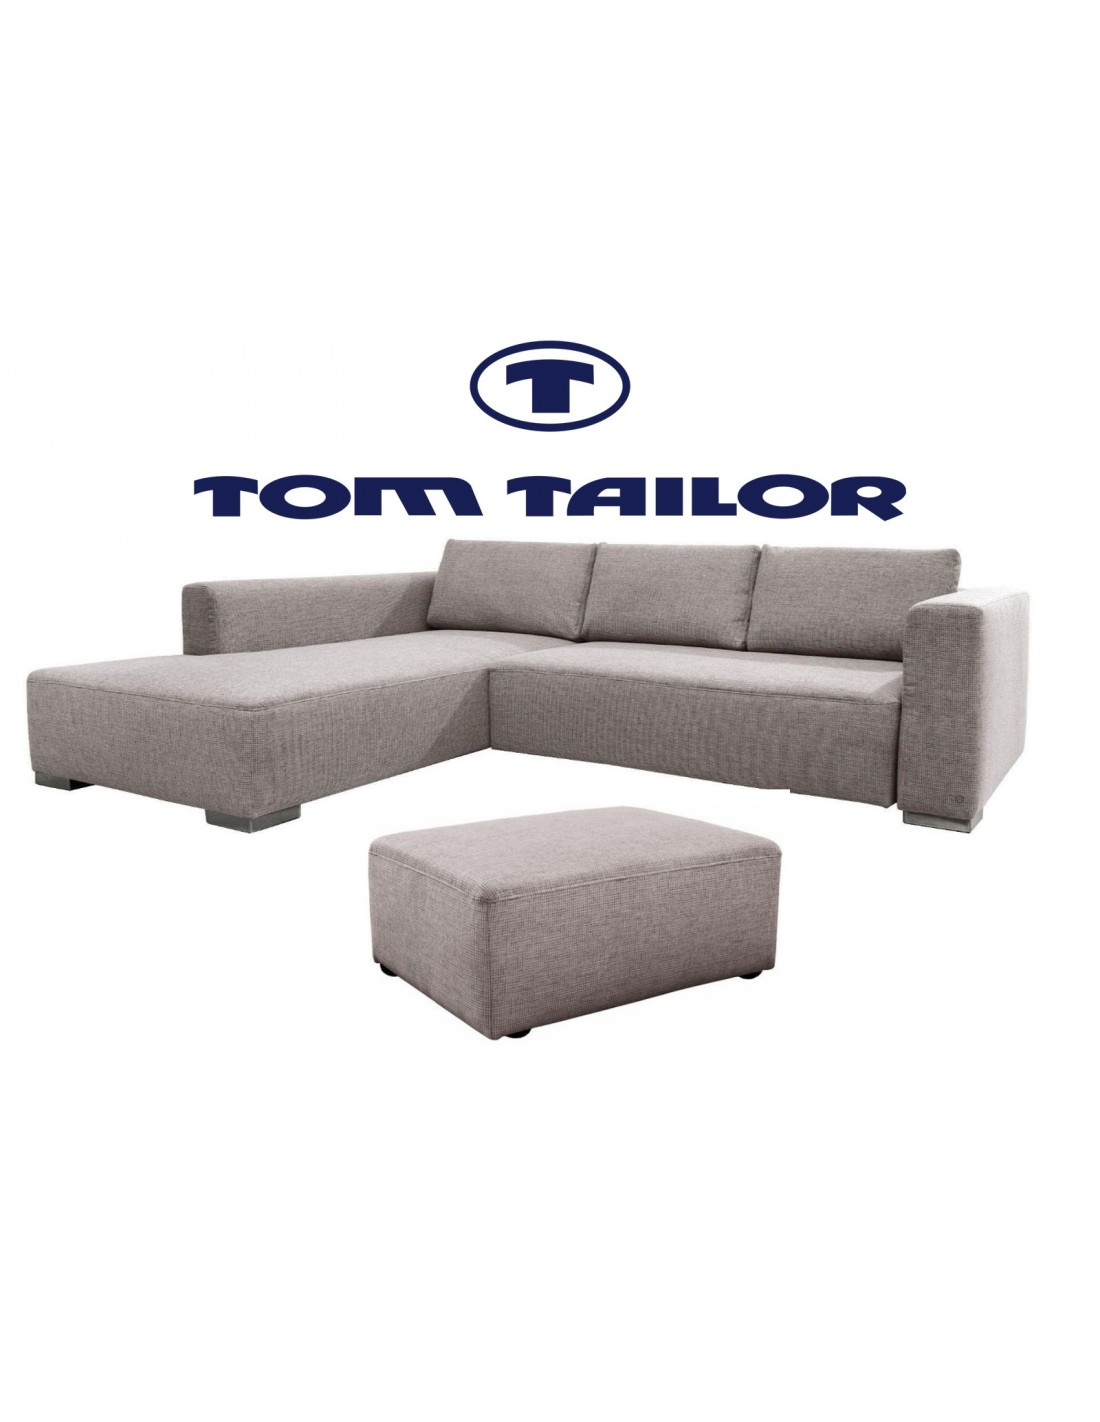 Full Size of Tom Tailor Sofa Big Cube Nordic Pure Elements Style Heaven Casual Colors Chic Ecksofa Xl Mit Hocker Inhofer Sitzhöhe 55 Cm Franz Fertig Rattan Garten 2er Grau Sofa Tom Tailor Sofa